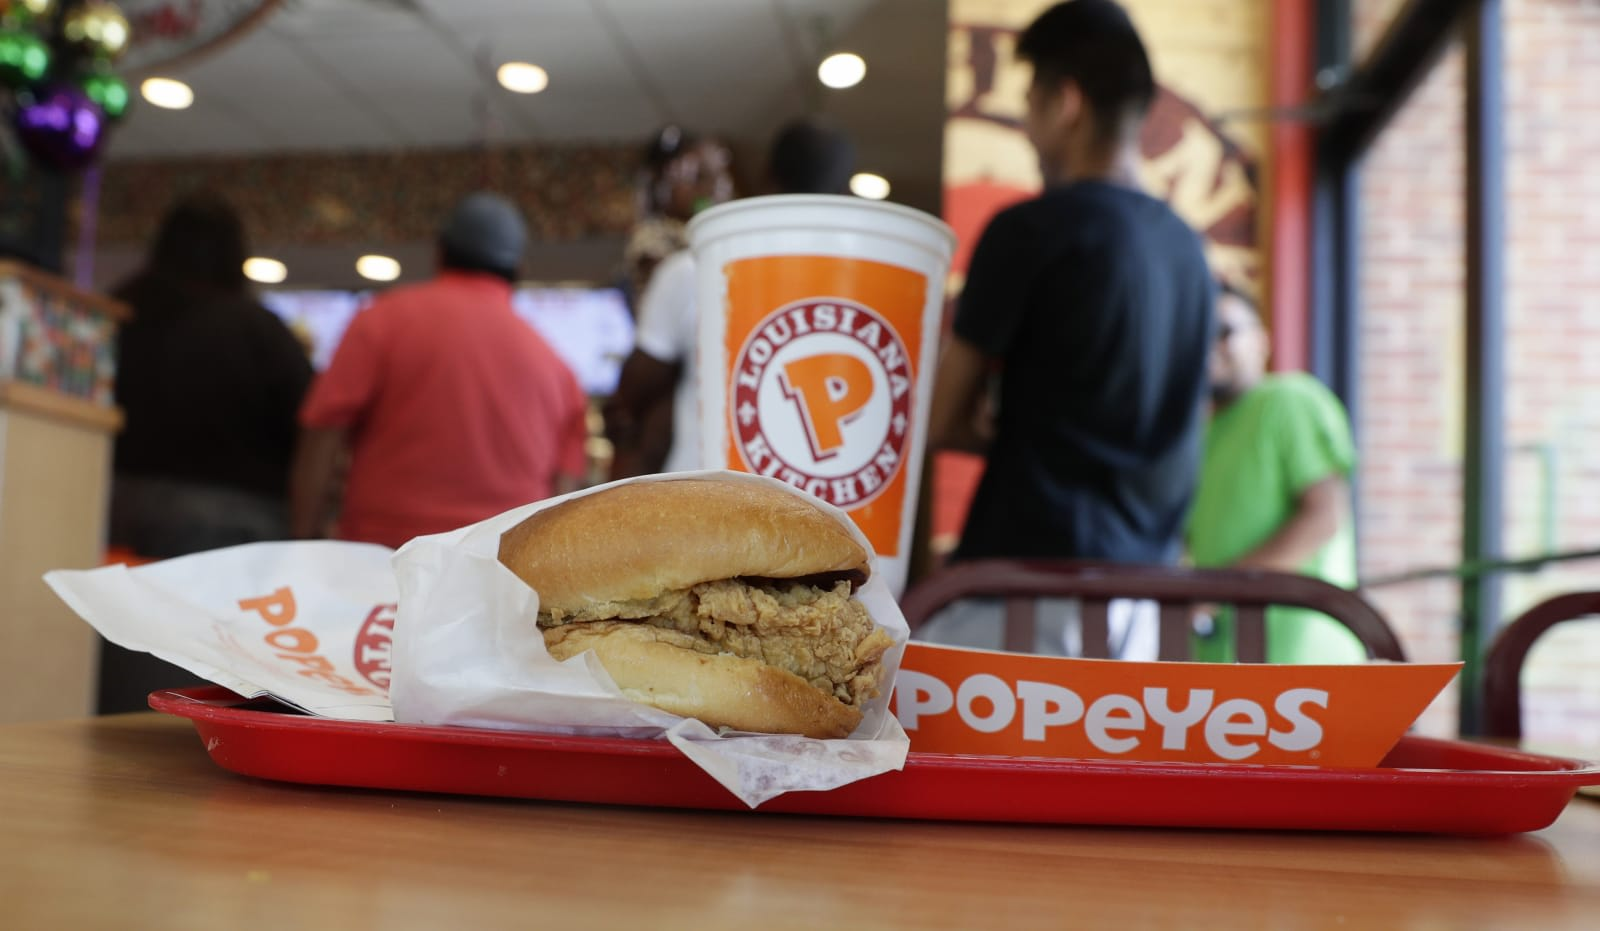 Popeyes pushes its mobile app as a way to find the sold-out